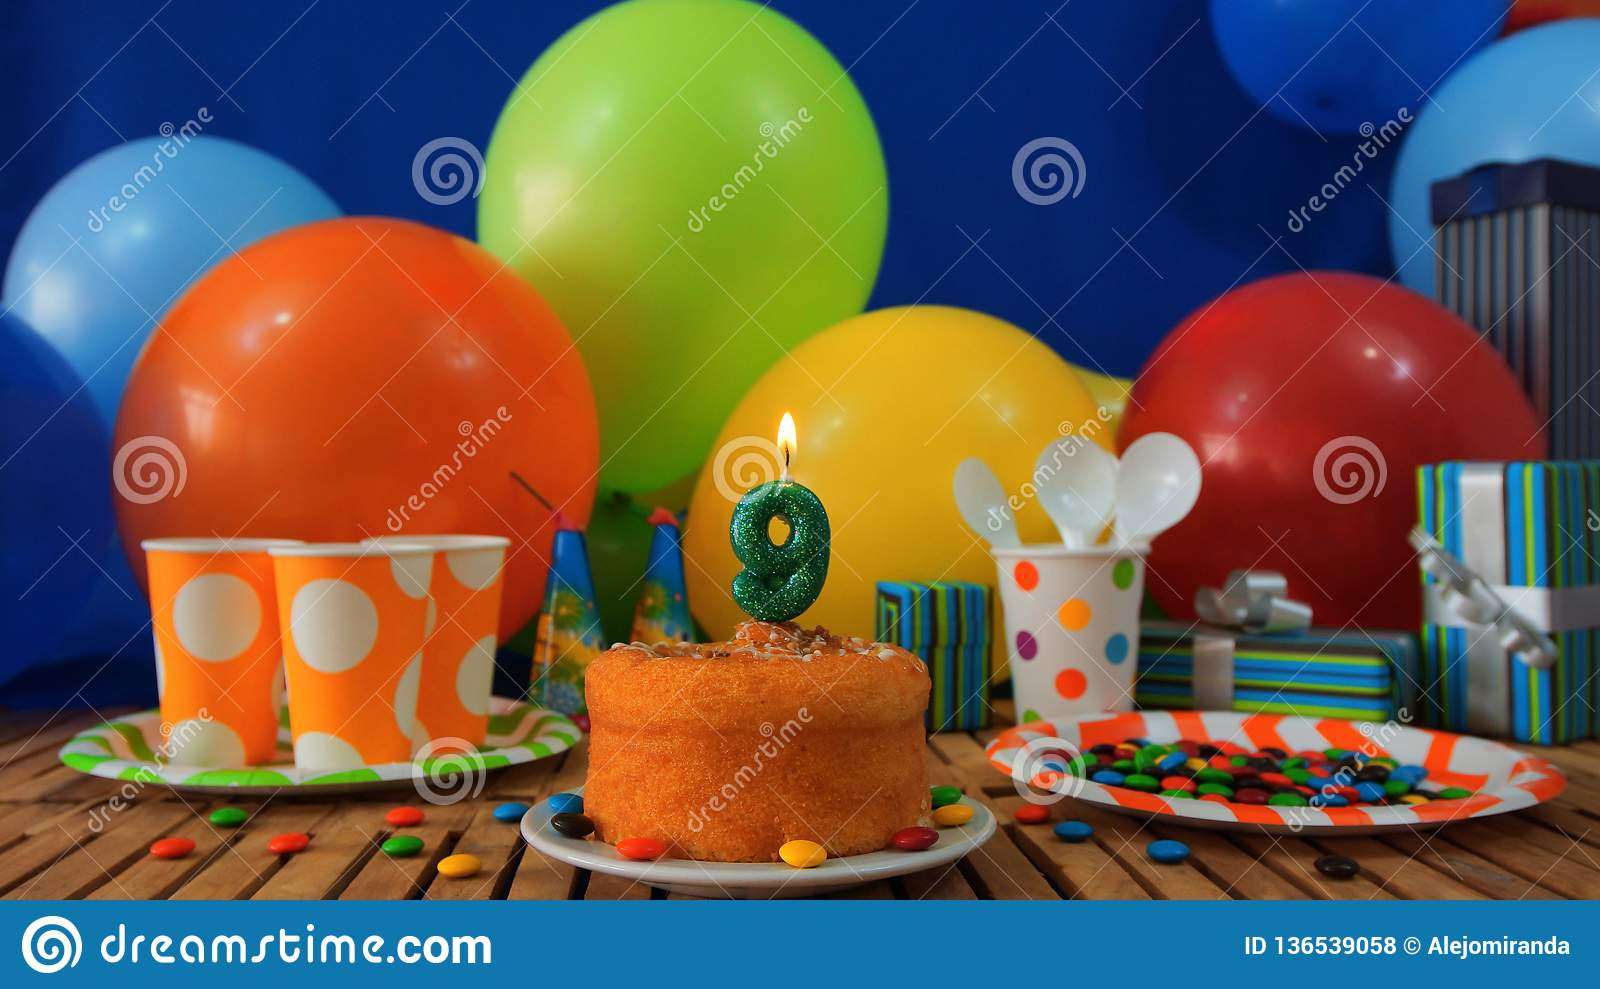 Birthday 9 Cake On Rustic Wooden Table With Background Of ...